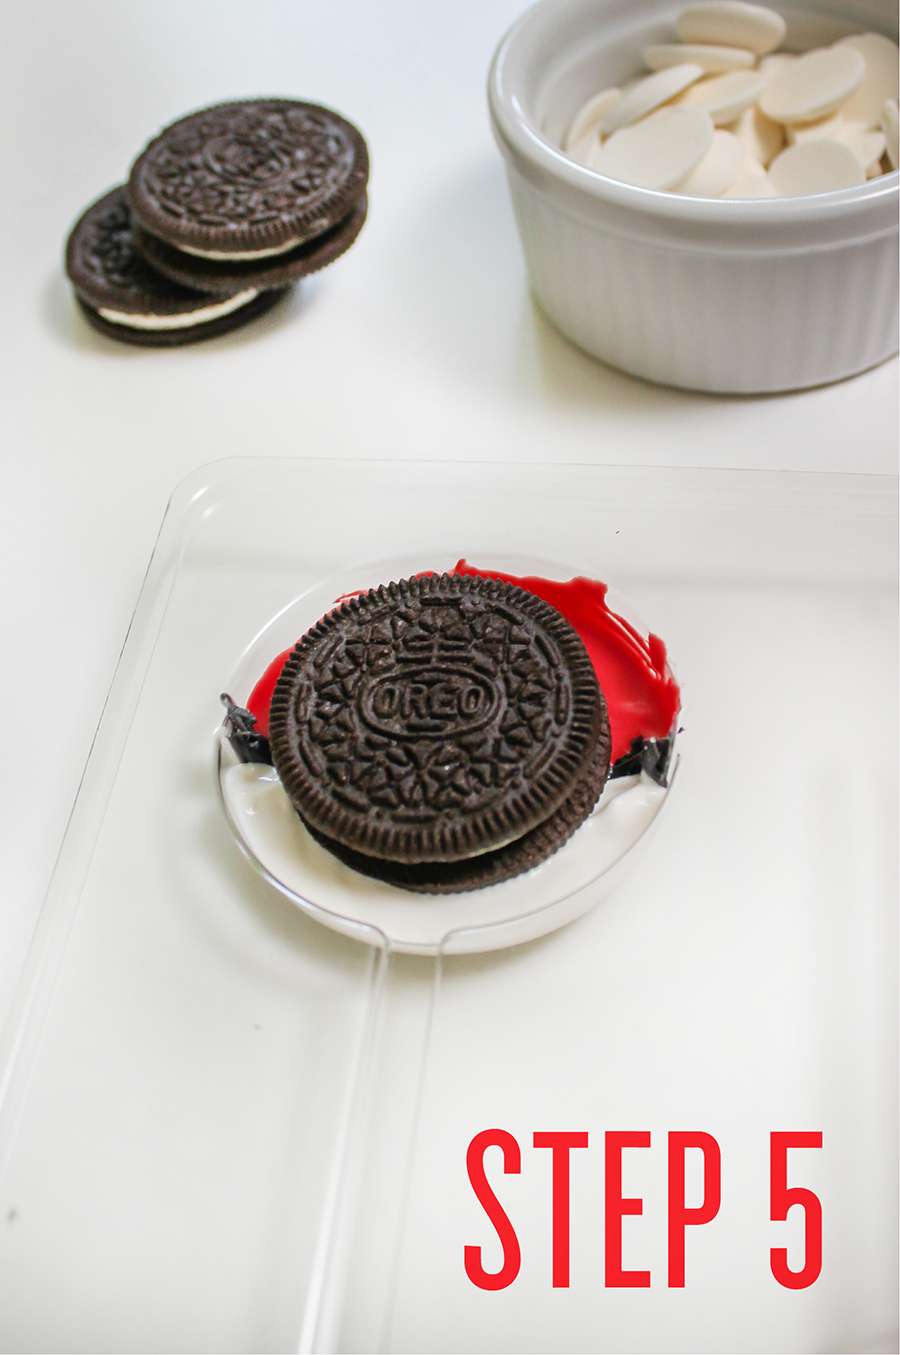 Easy DIY Pokemon Oreo Pops, poke ball pops, oreo pops, food fun, Just Add Confetti, pokemon party foods, party food, creative food idea, party food ideas, Pokemon Oreo Pops, Pokemon party, step-by-step tutorial, Pokemon, Poke ball, Oreo